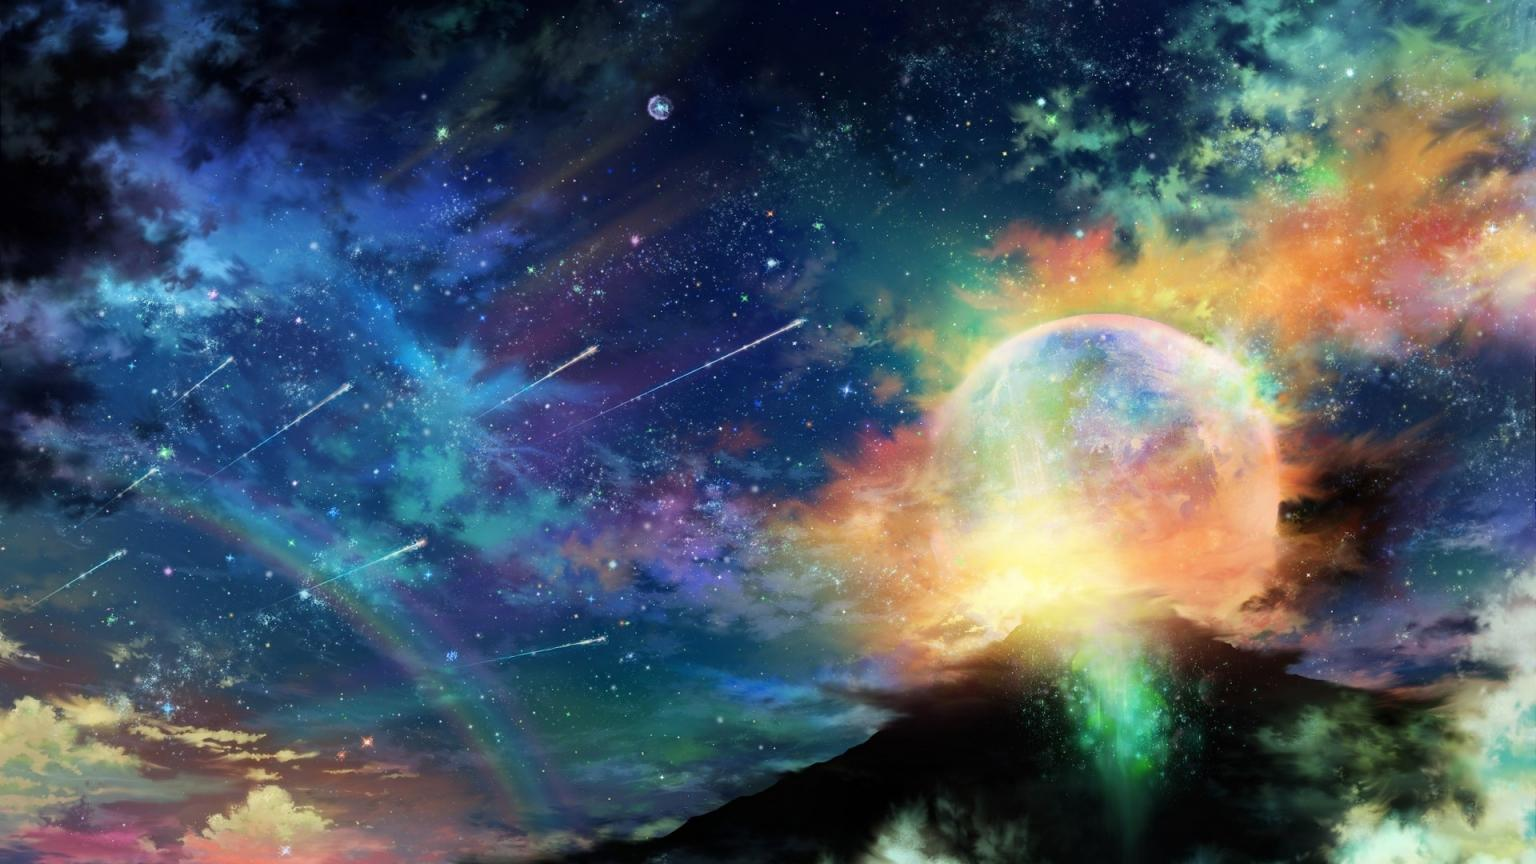 Colorful Space Landscape 1536 x 864 HDTV Wallpapers